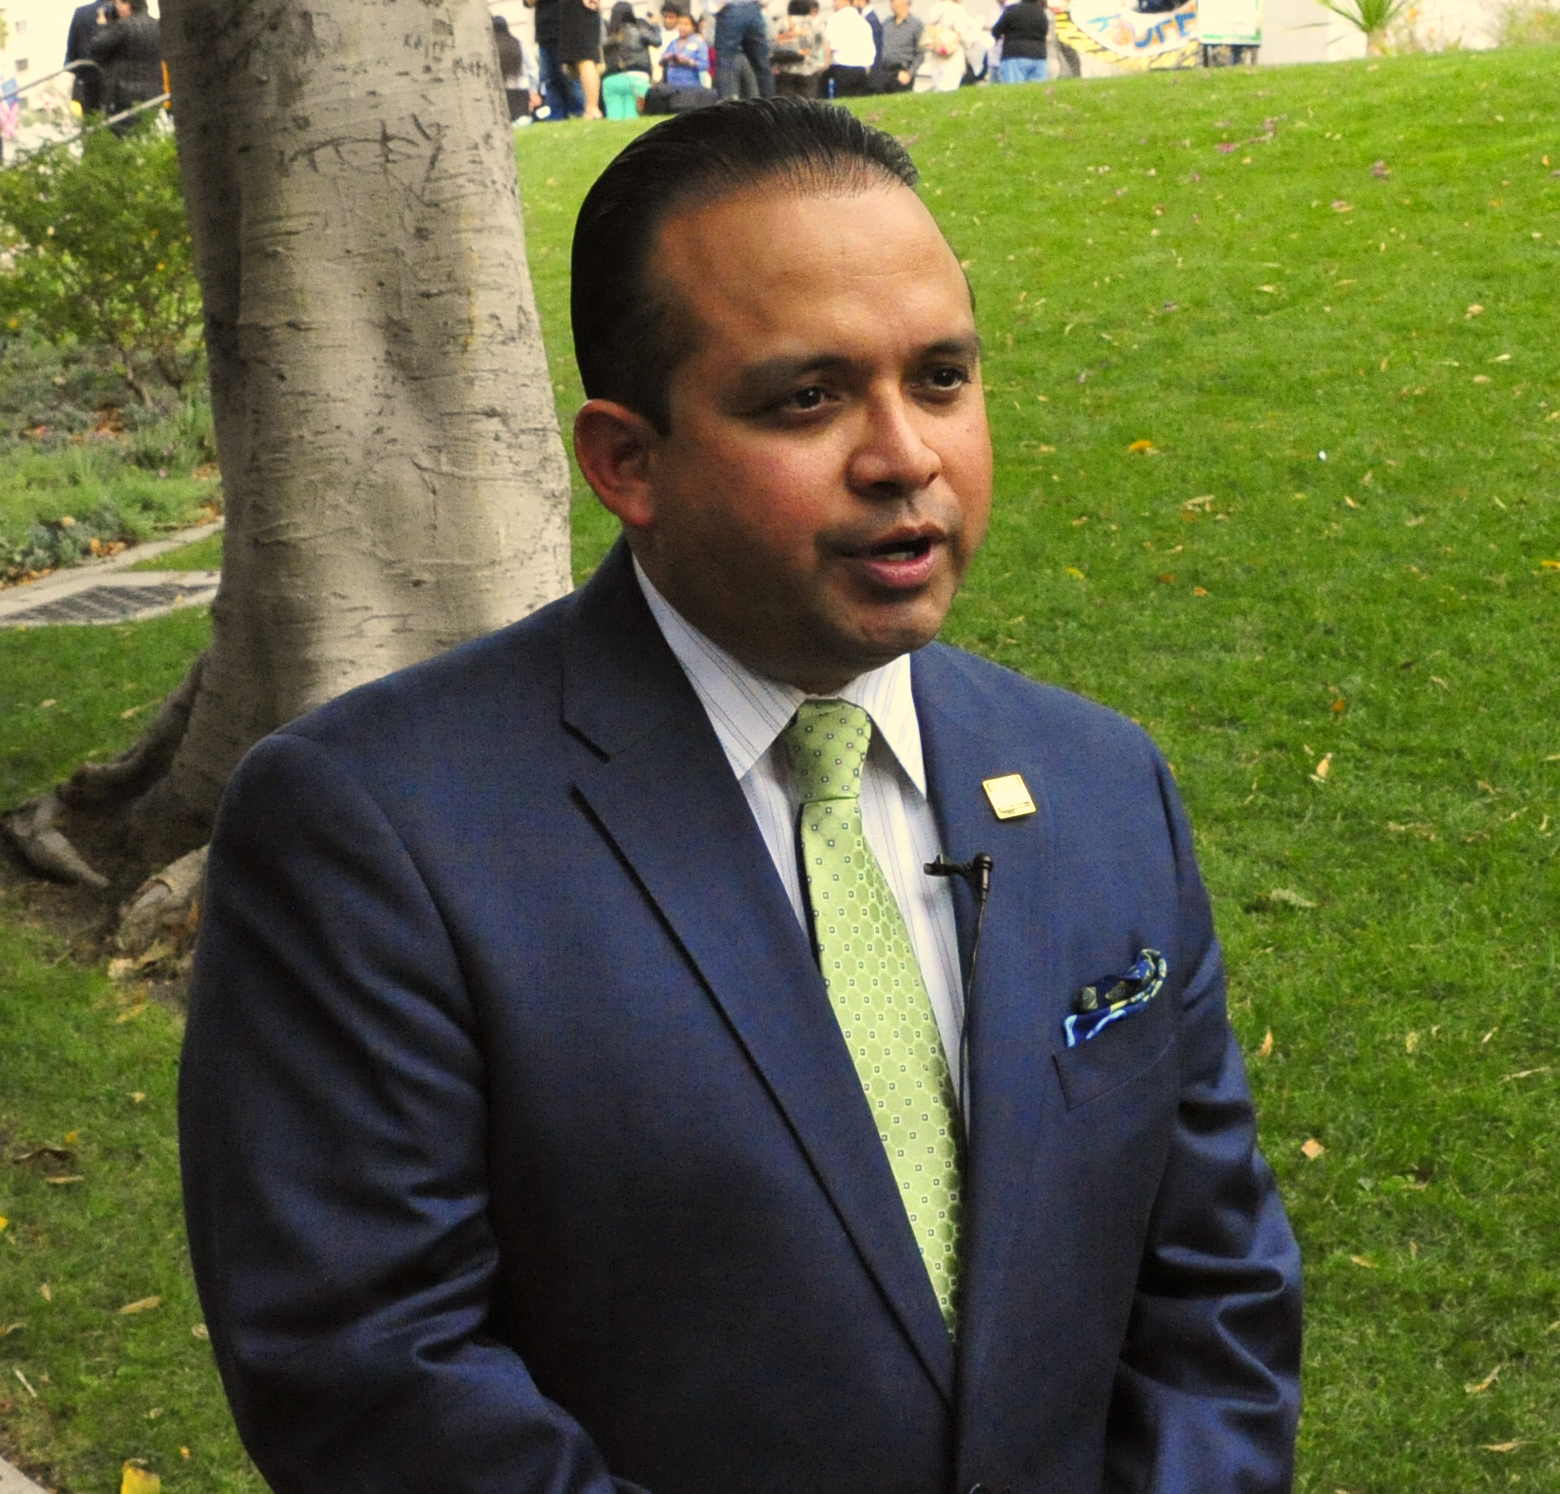 Sen. Luis Alejo (D-Salinas), author and sponsor of the Undocumented Immigrant Drivers License Bill, responding to media in Los Angeles on Oct. 3.